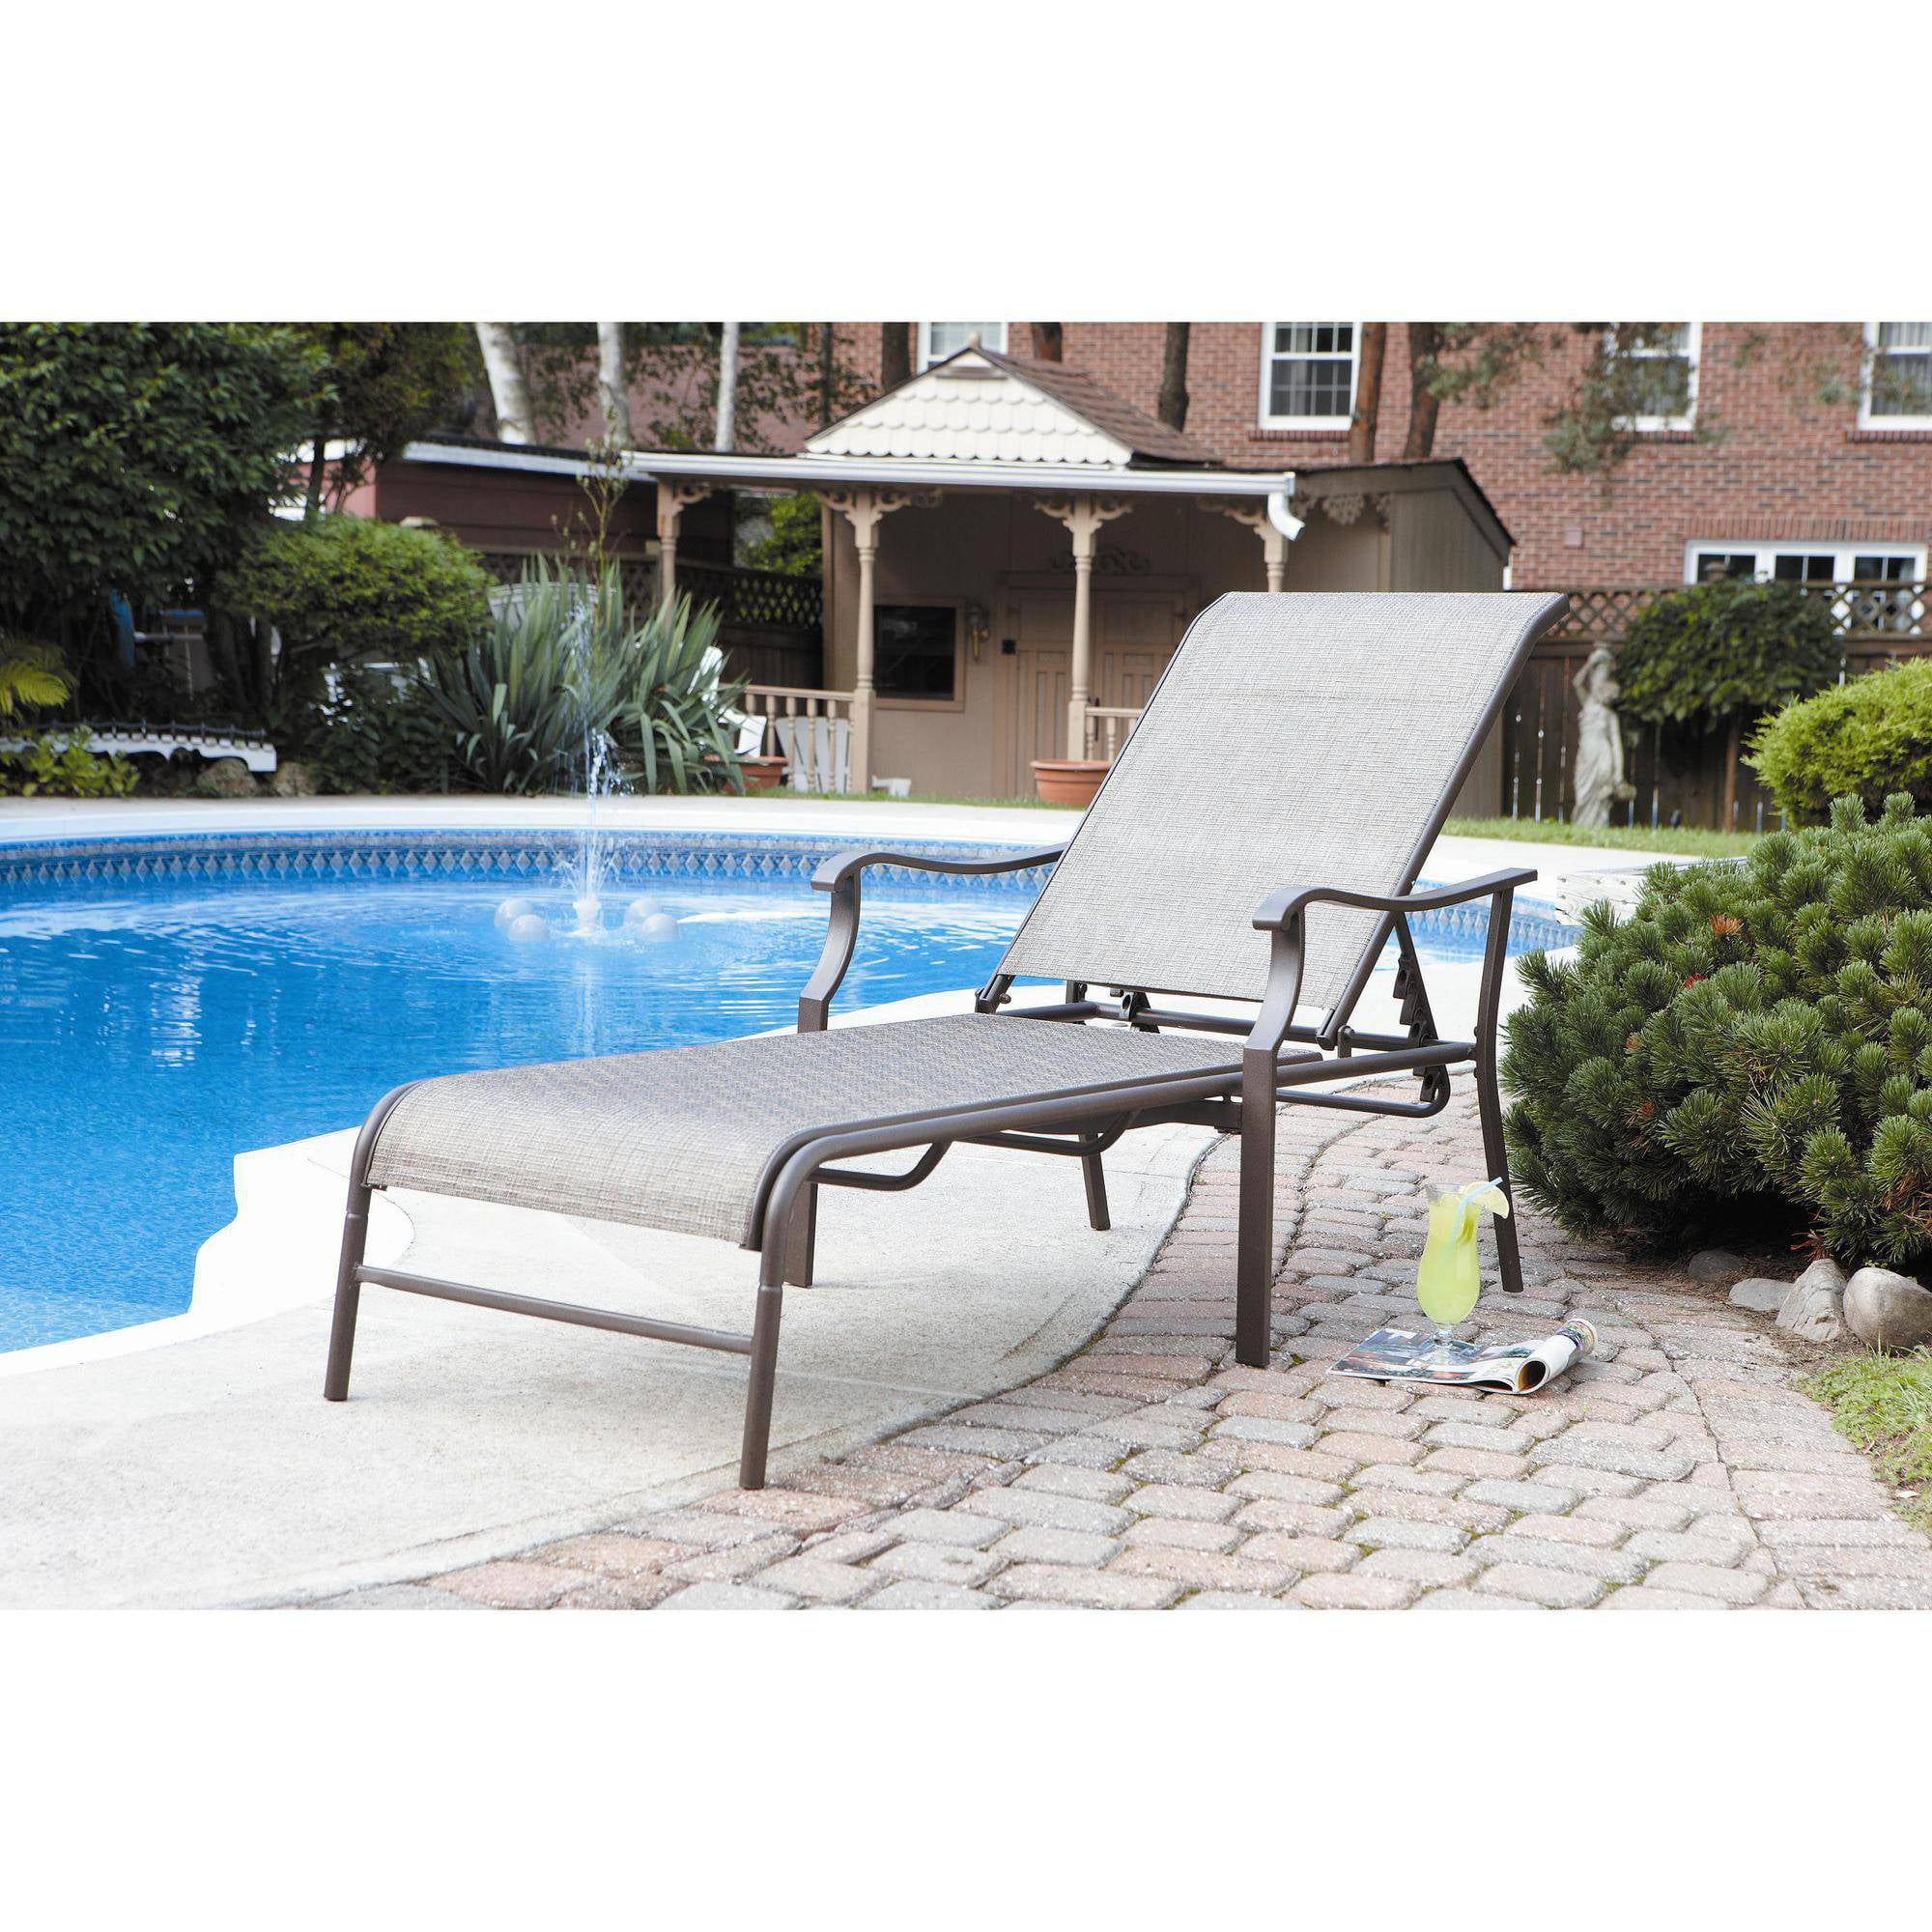 Zero Gravity Chairs Case Of (2) Black Lounge Patio Chairs Utility Pool Tray  Cup Holders   Walmart.com